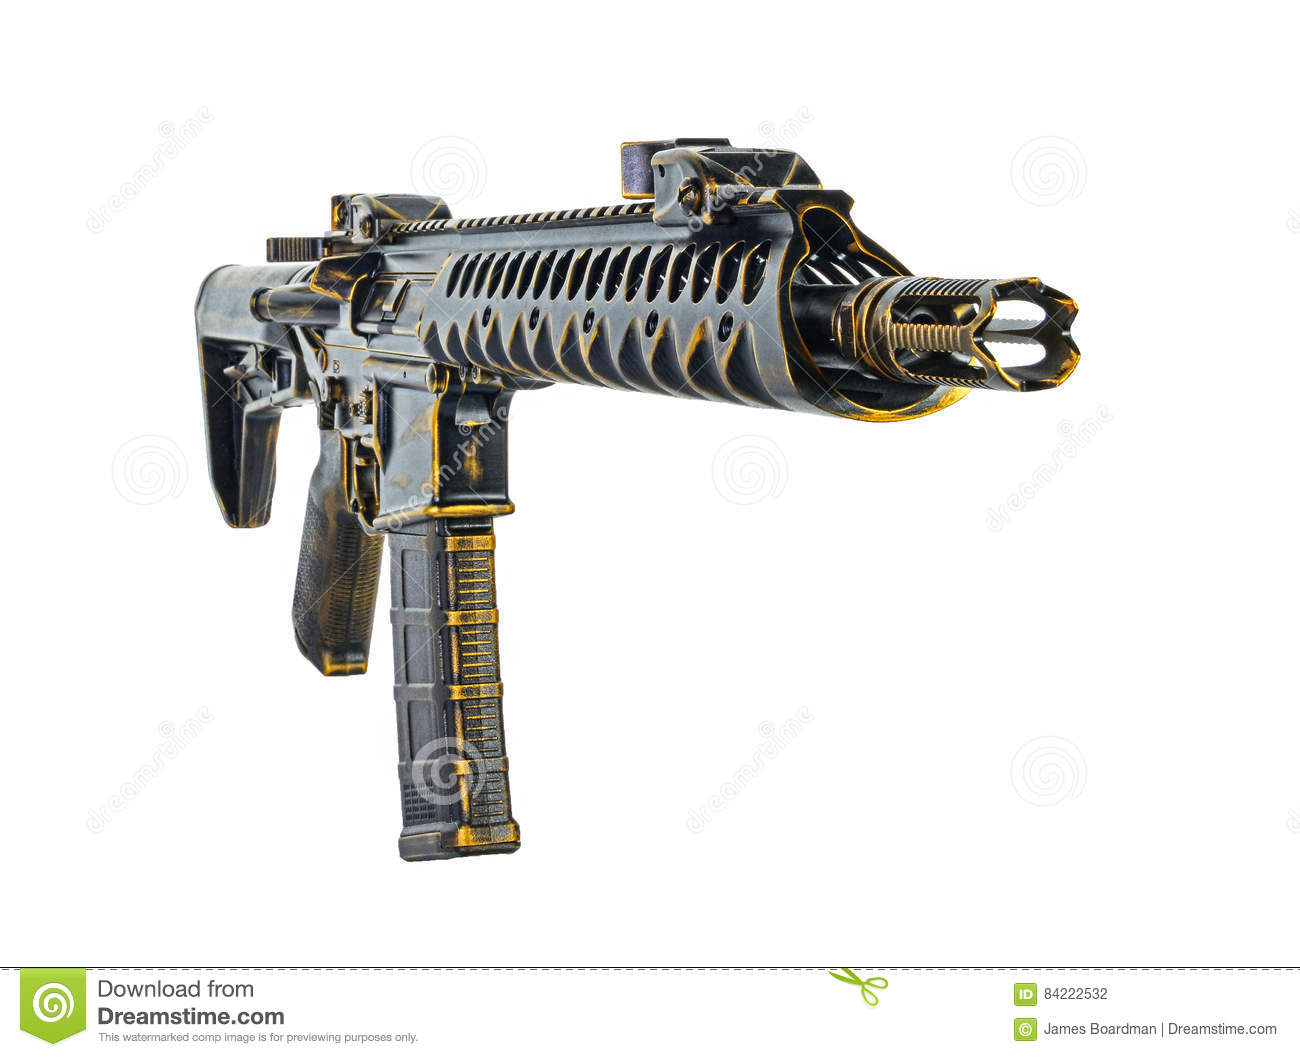 Black Chrome And Gold Distressed SBR AR15 With 30rd Mag Stock Photo ...